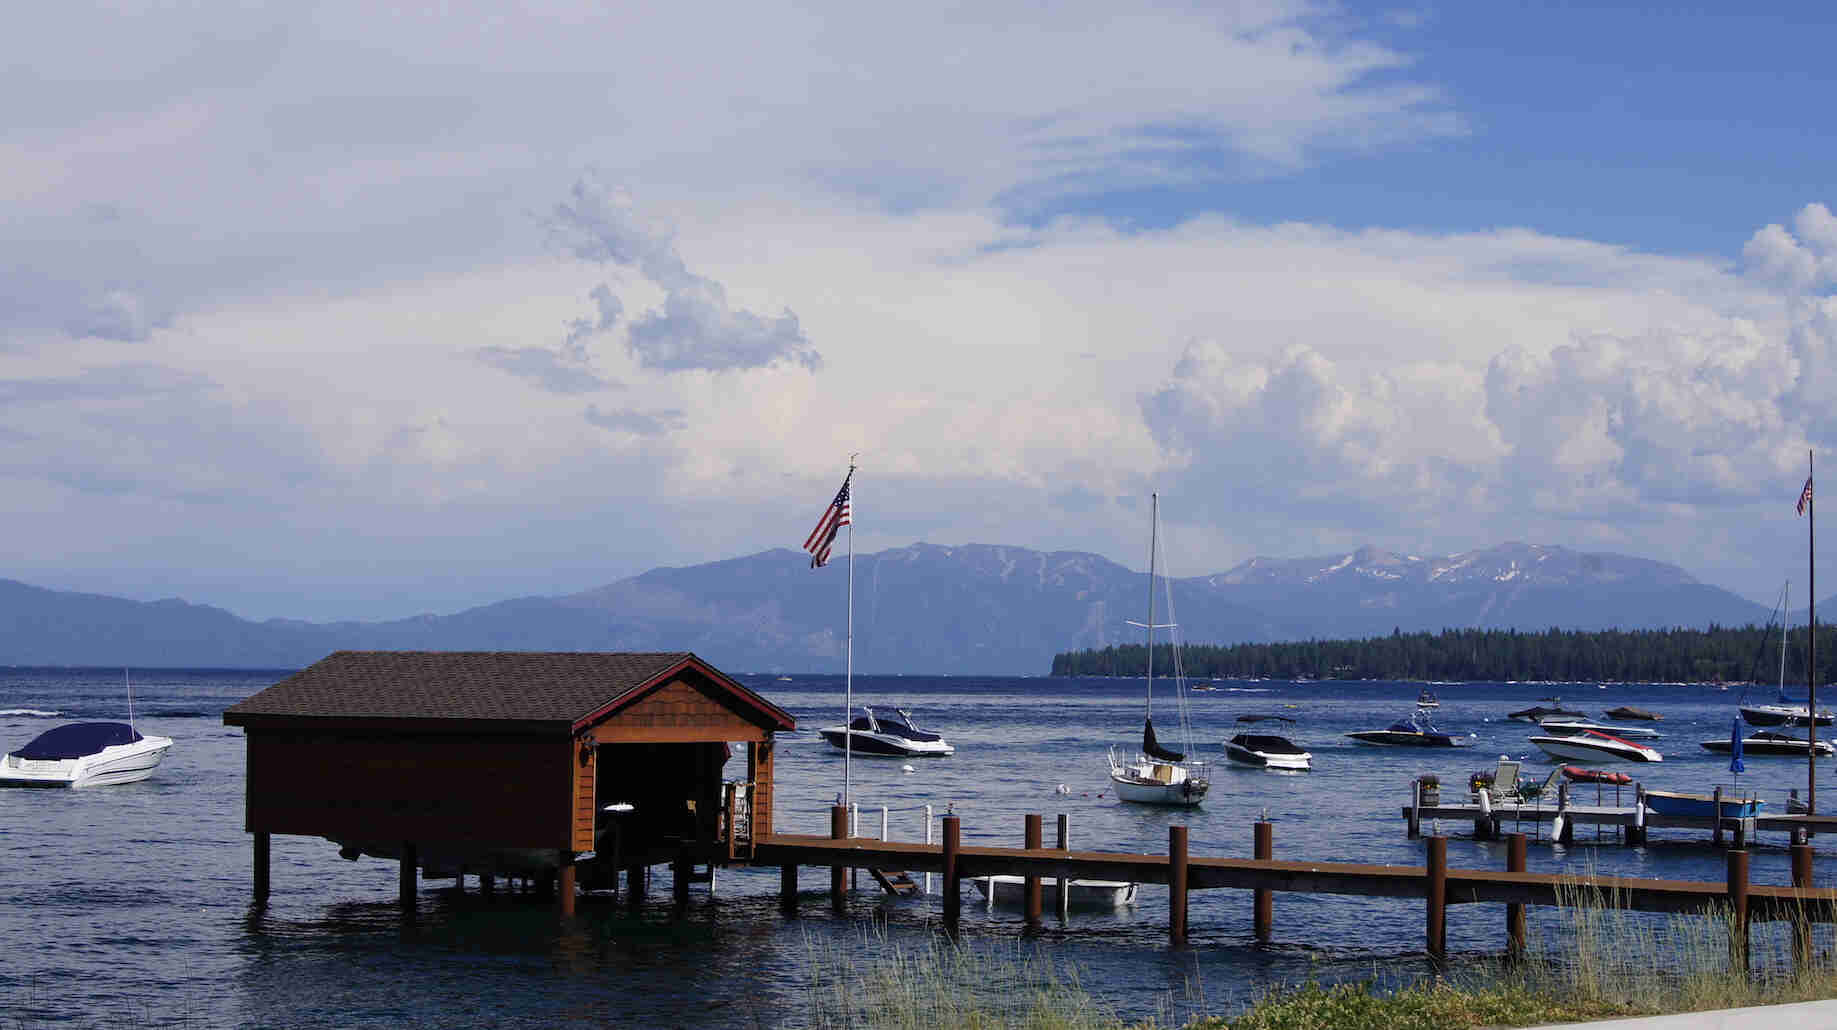 A dock with a boat house at the end, on a lake with boats, and mountains in the background